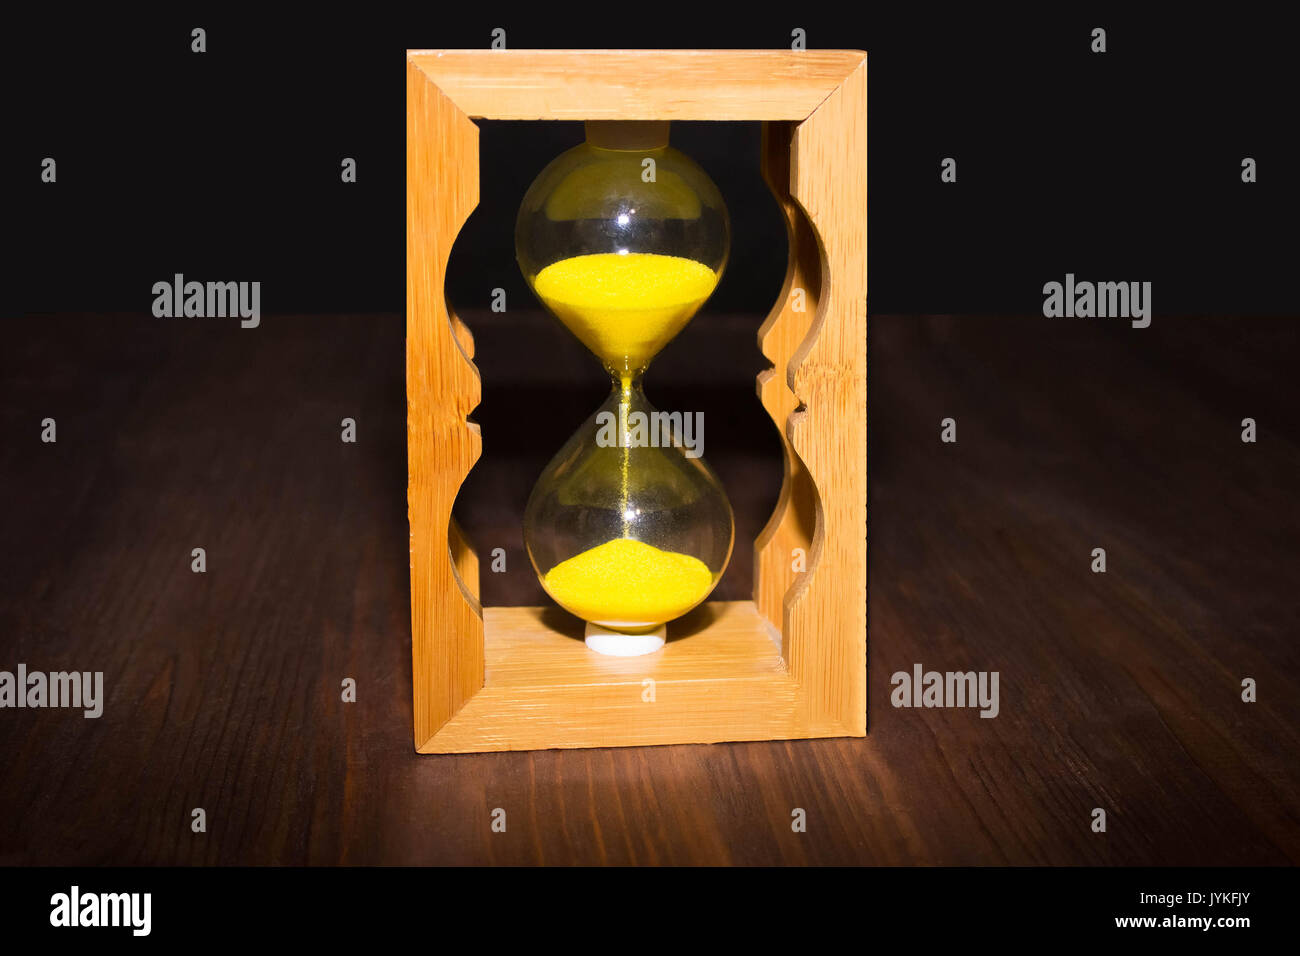 Hourglass as time passing concept for business deadline, urgency and running out of time. - Stock Image